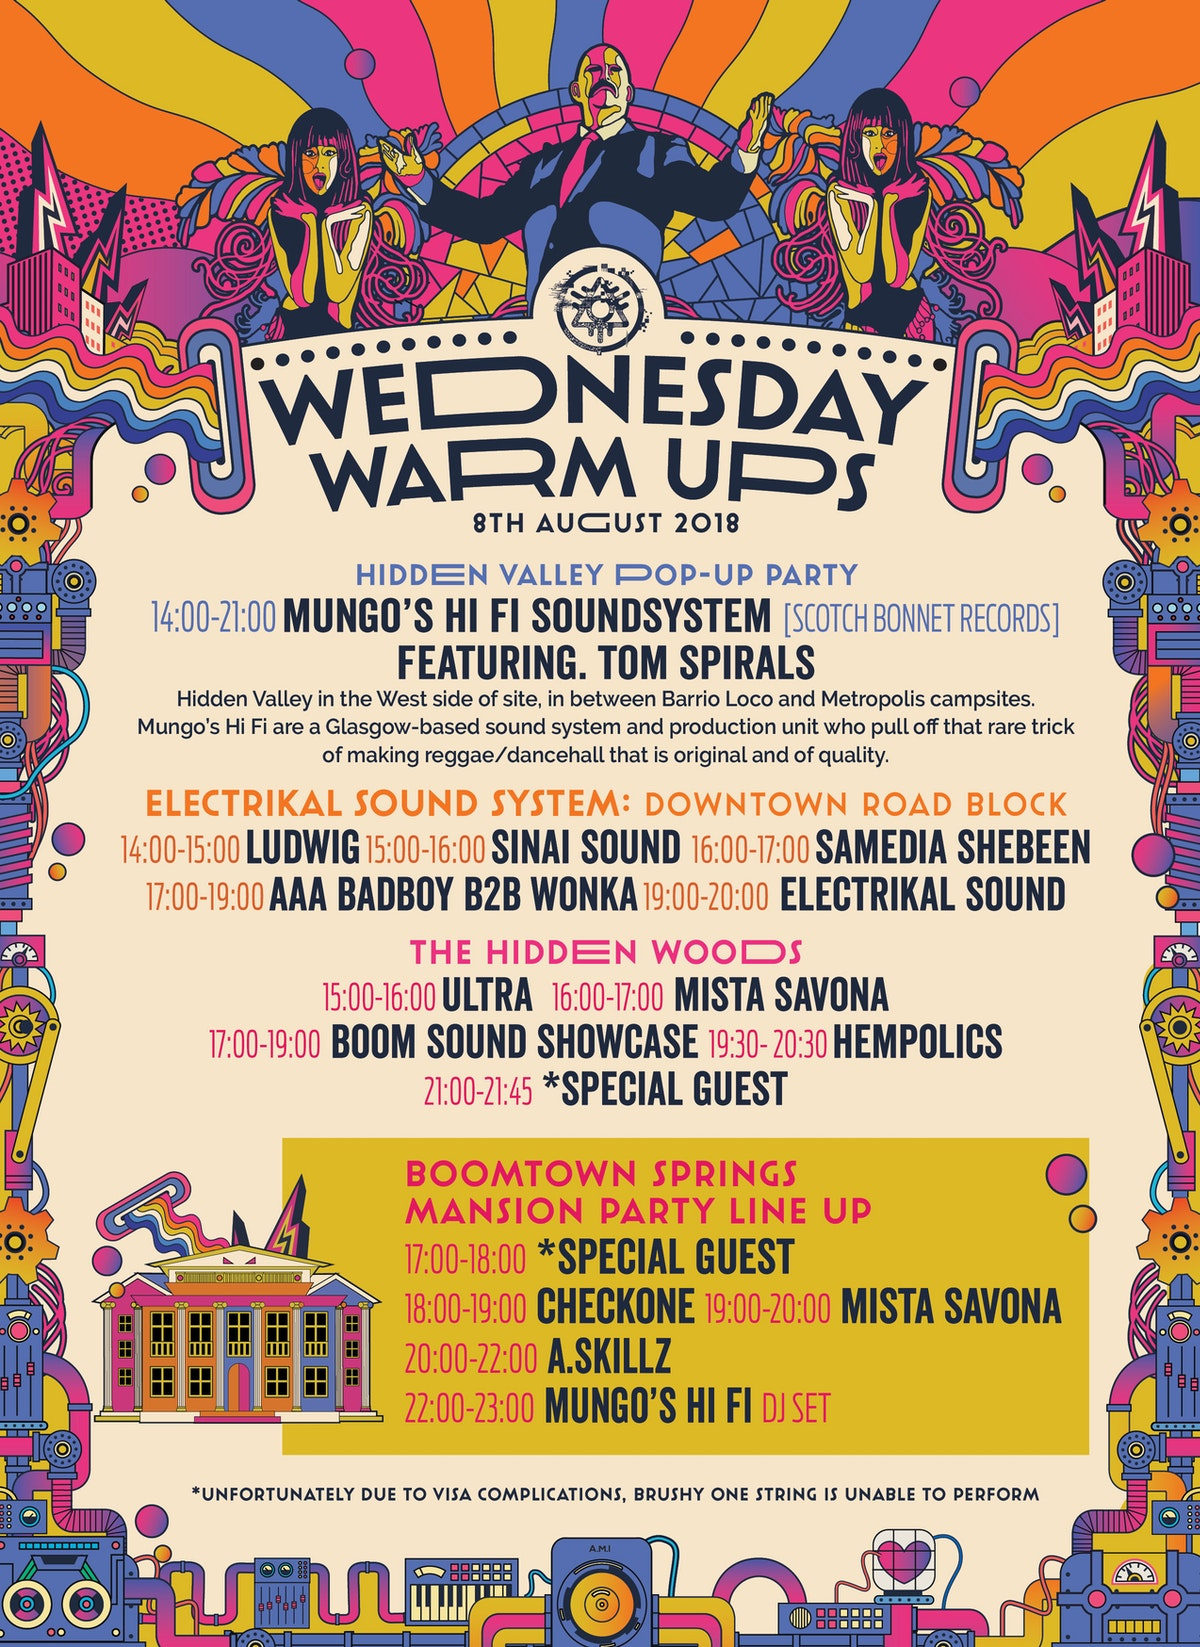 Have you got your Wednesday warm up ticket yet??!